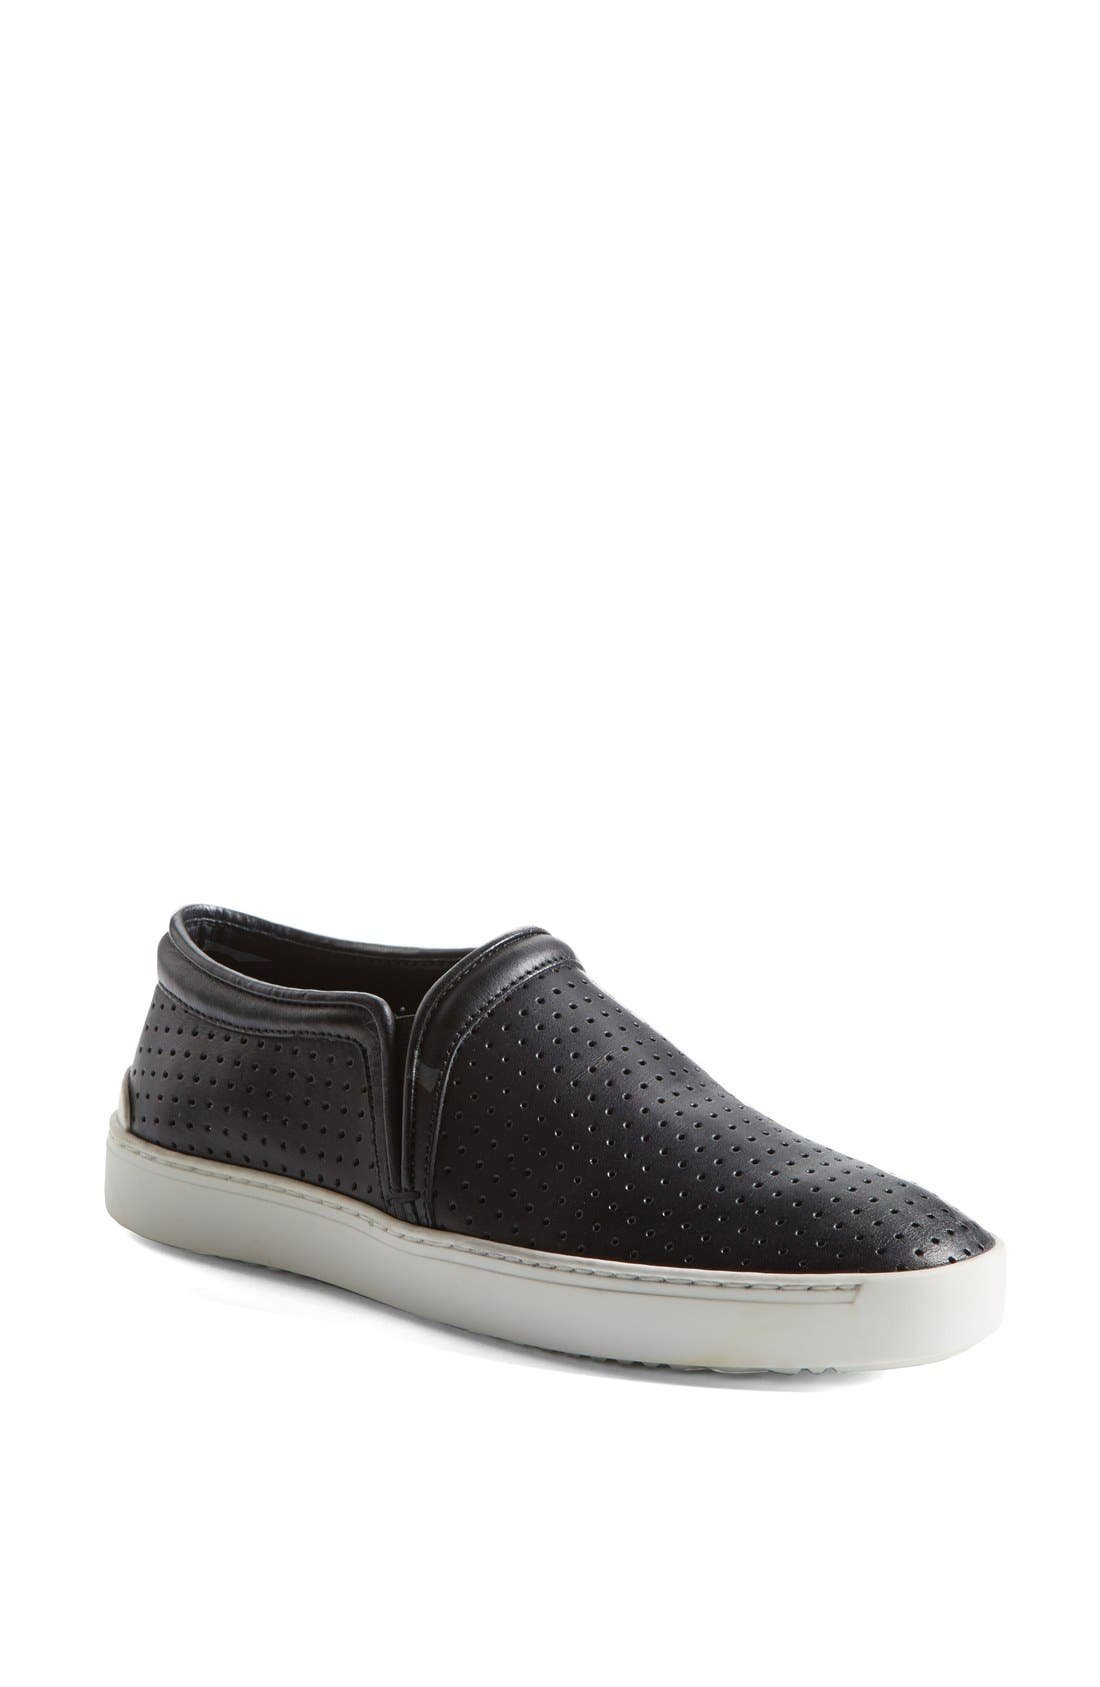 Alternate Image 1 Selected - rag & bone 'Kent' Perforated Leather Slip-On